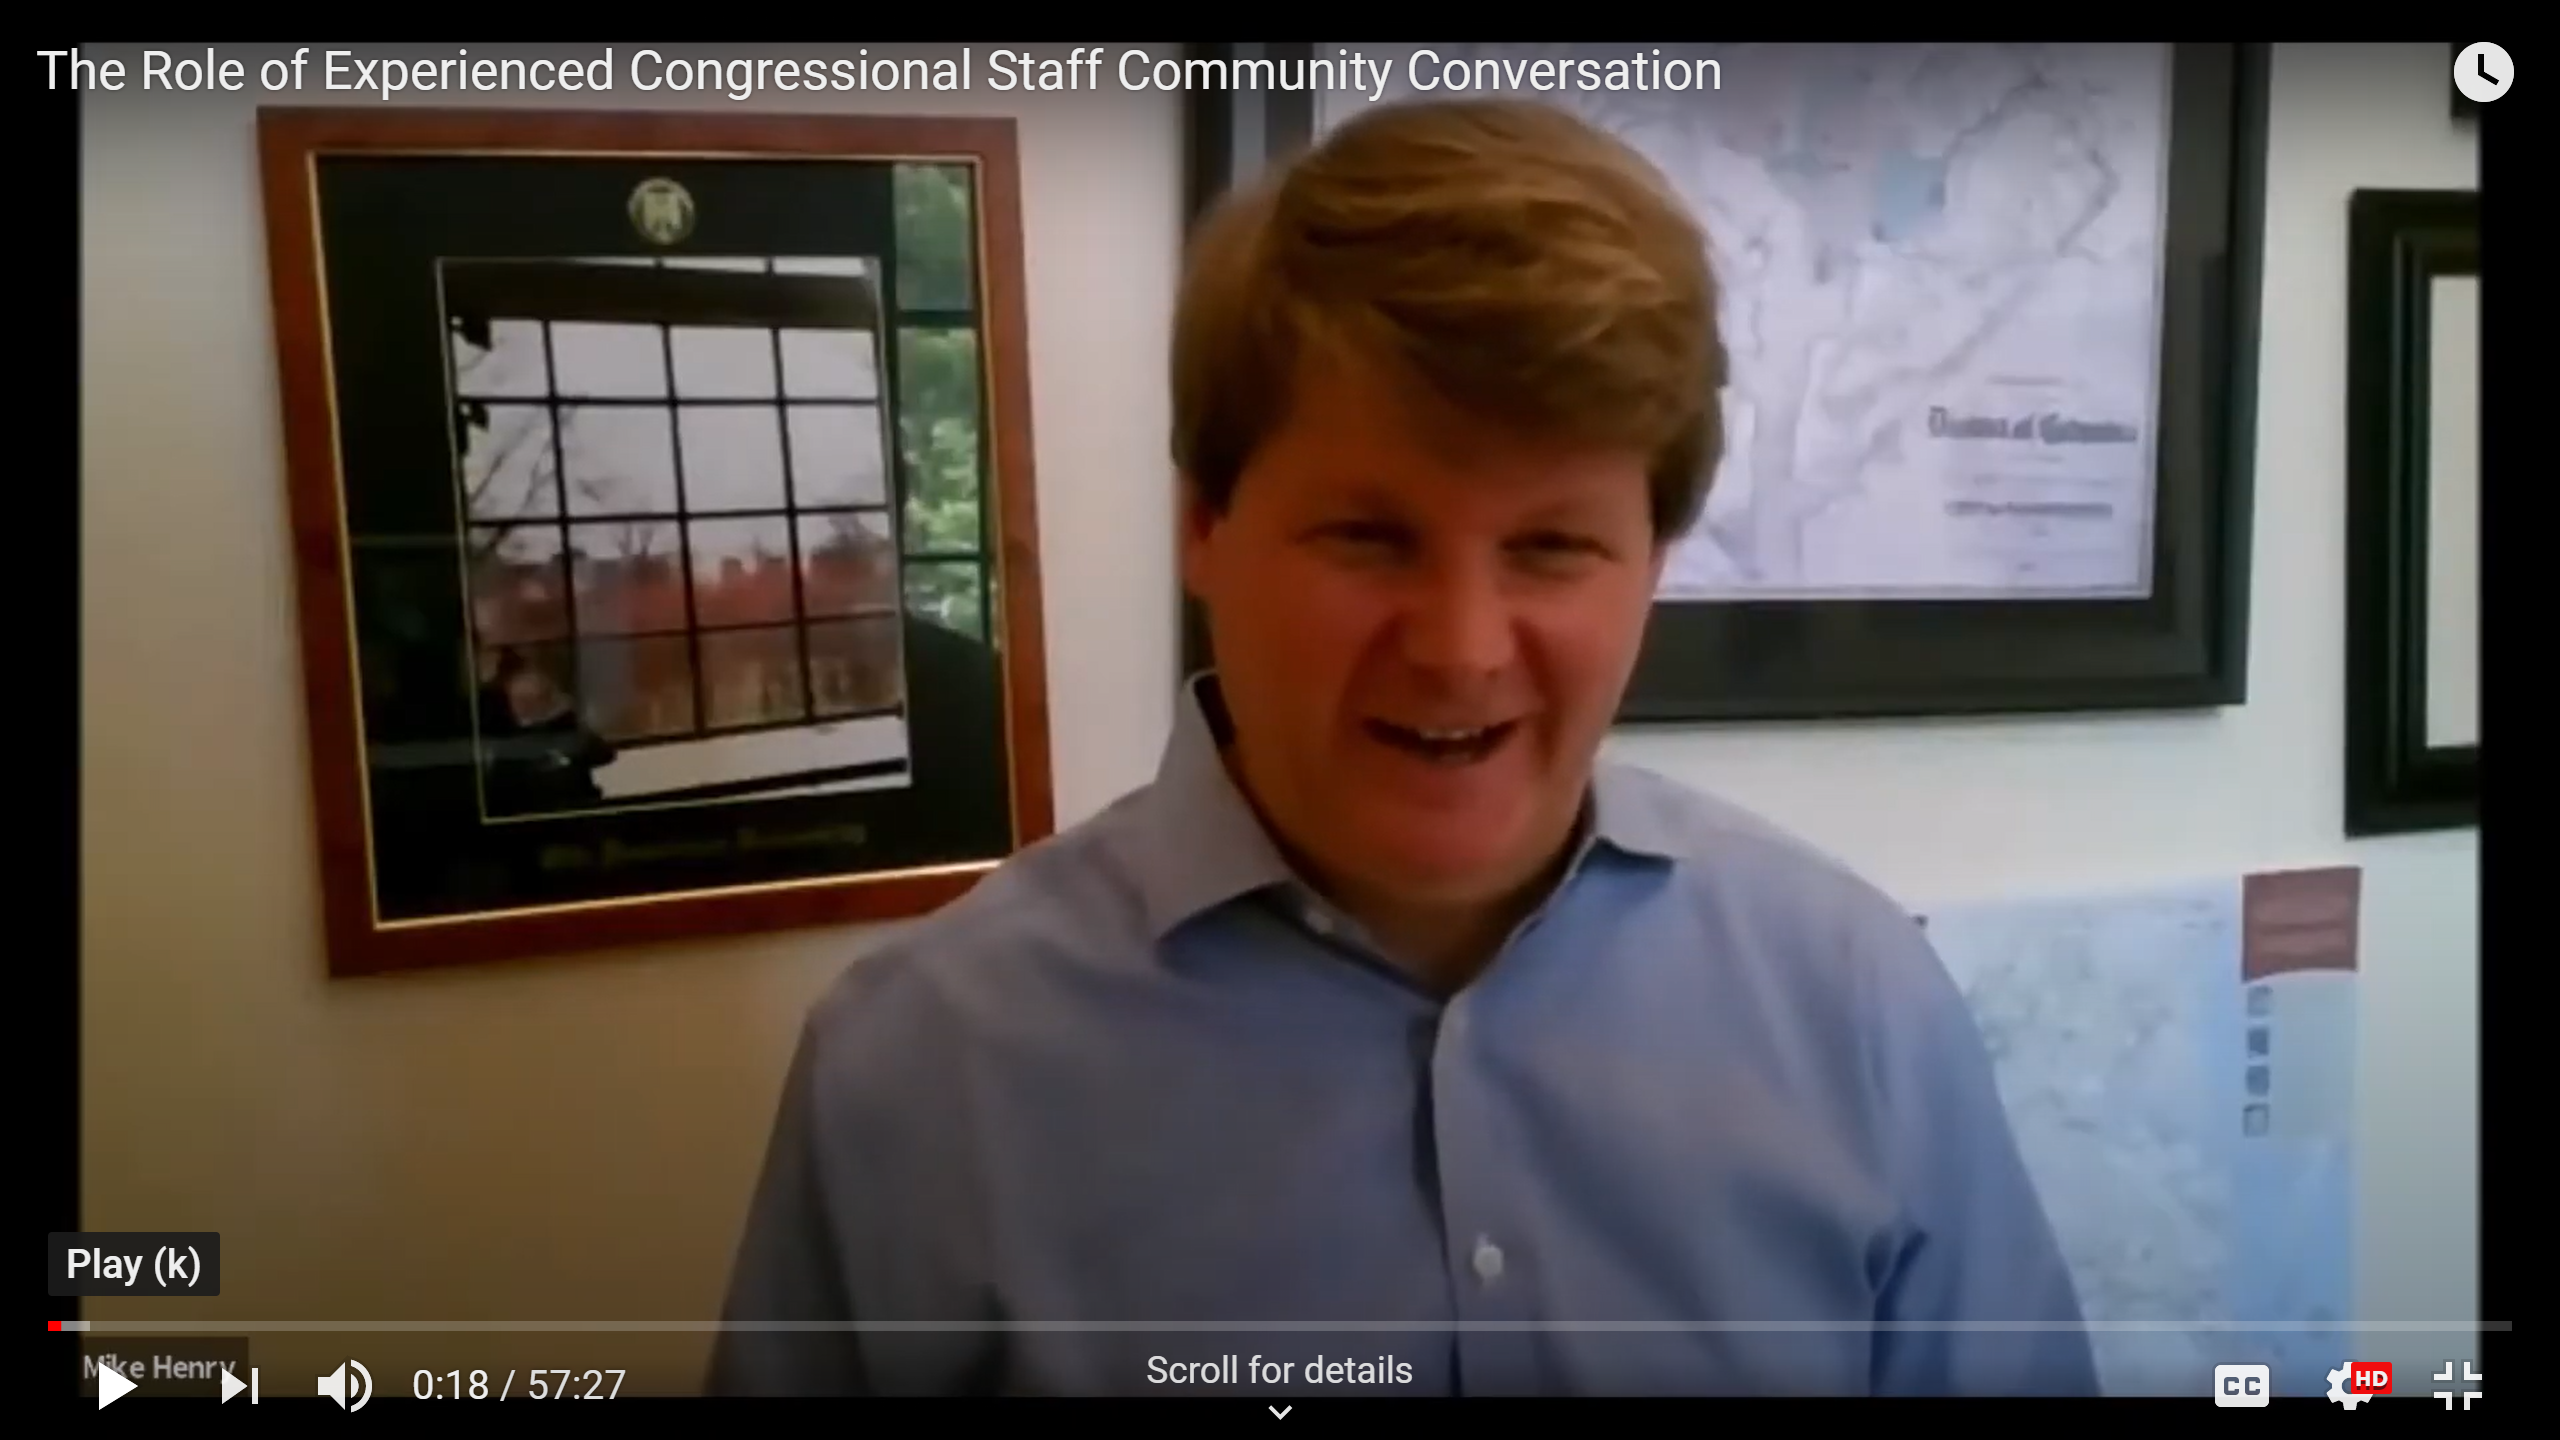 Watch: The Role of Experienced Congressional Staff